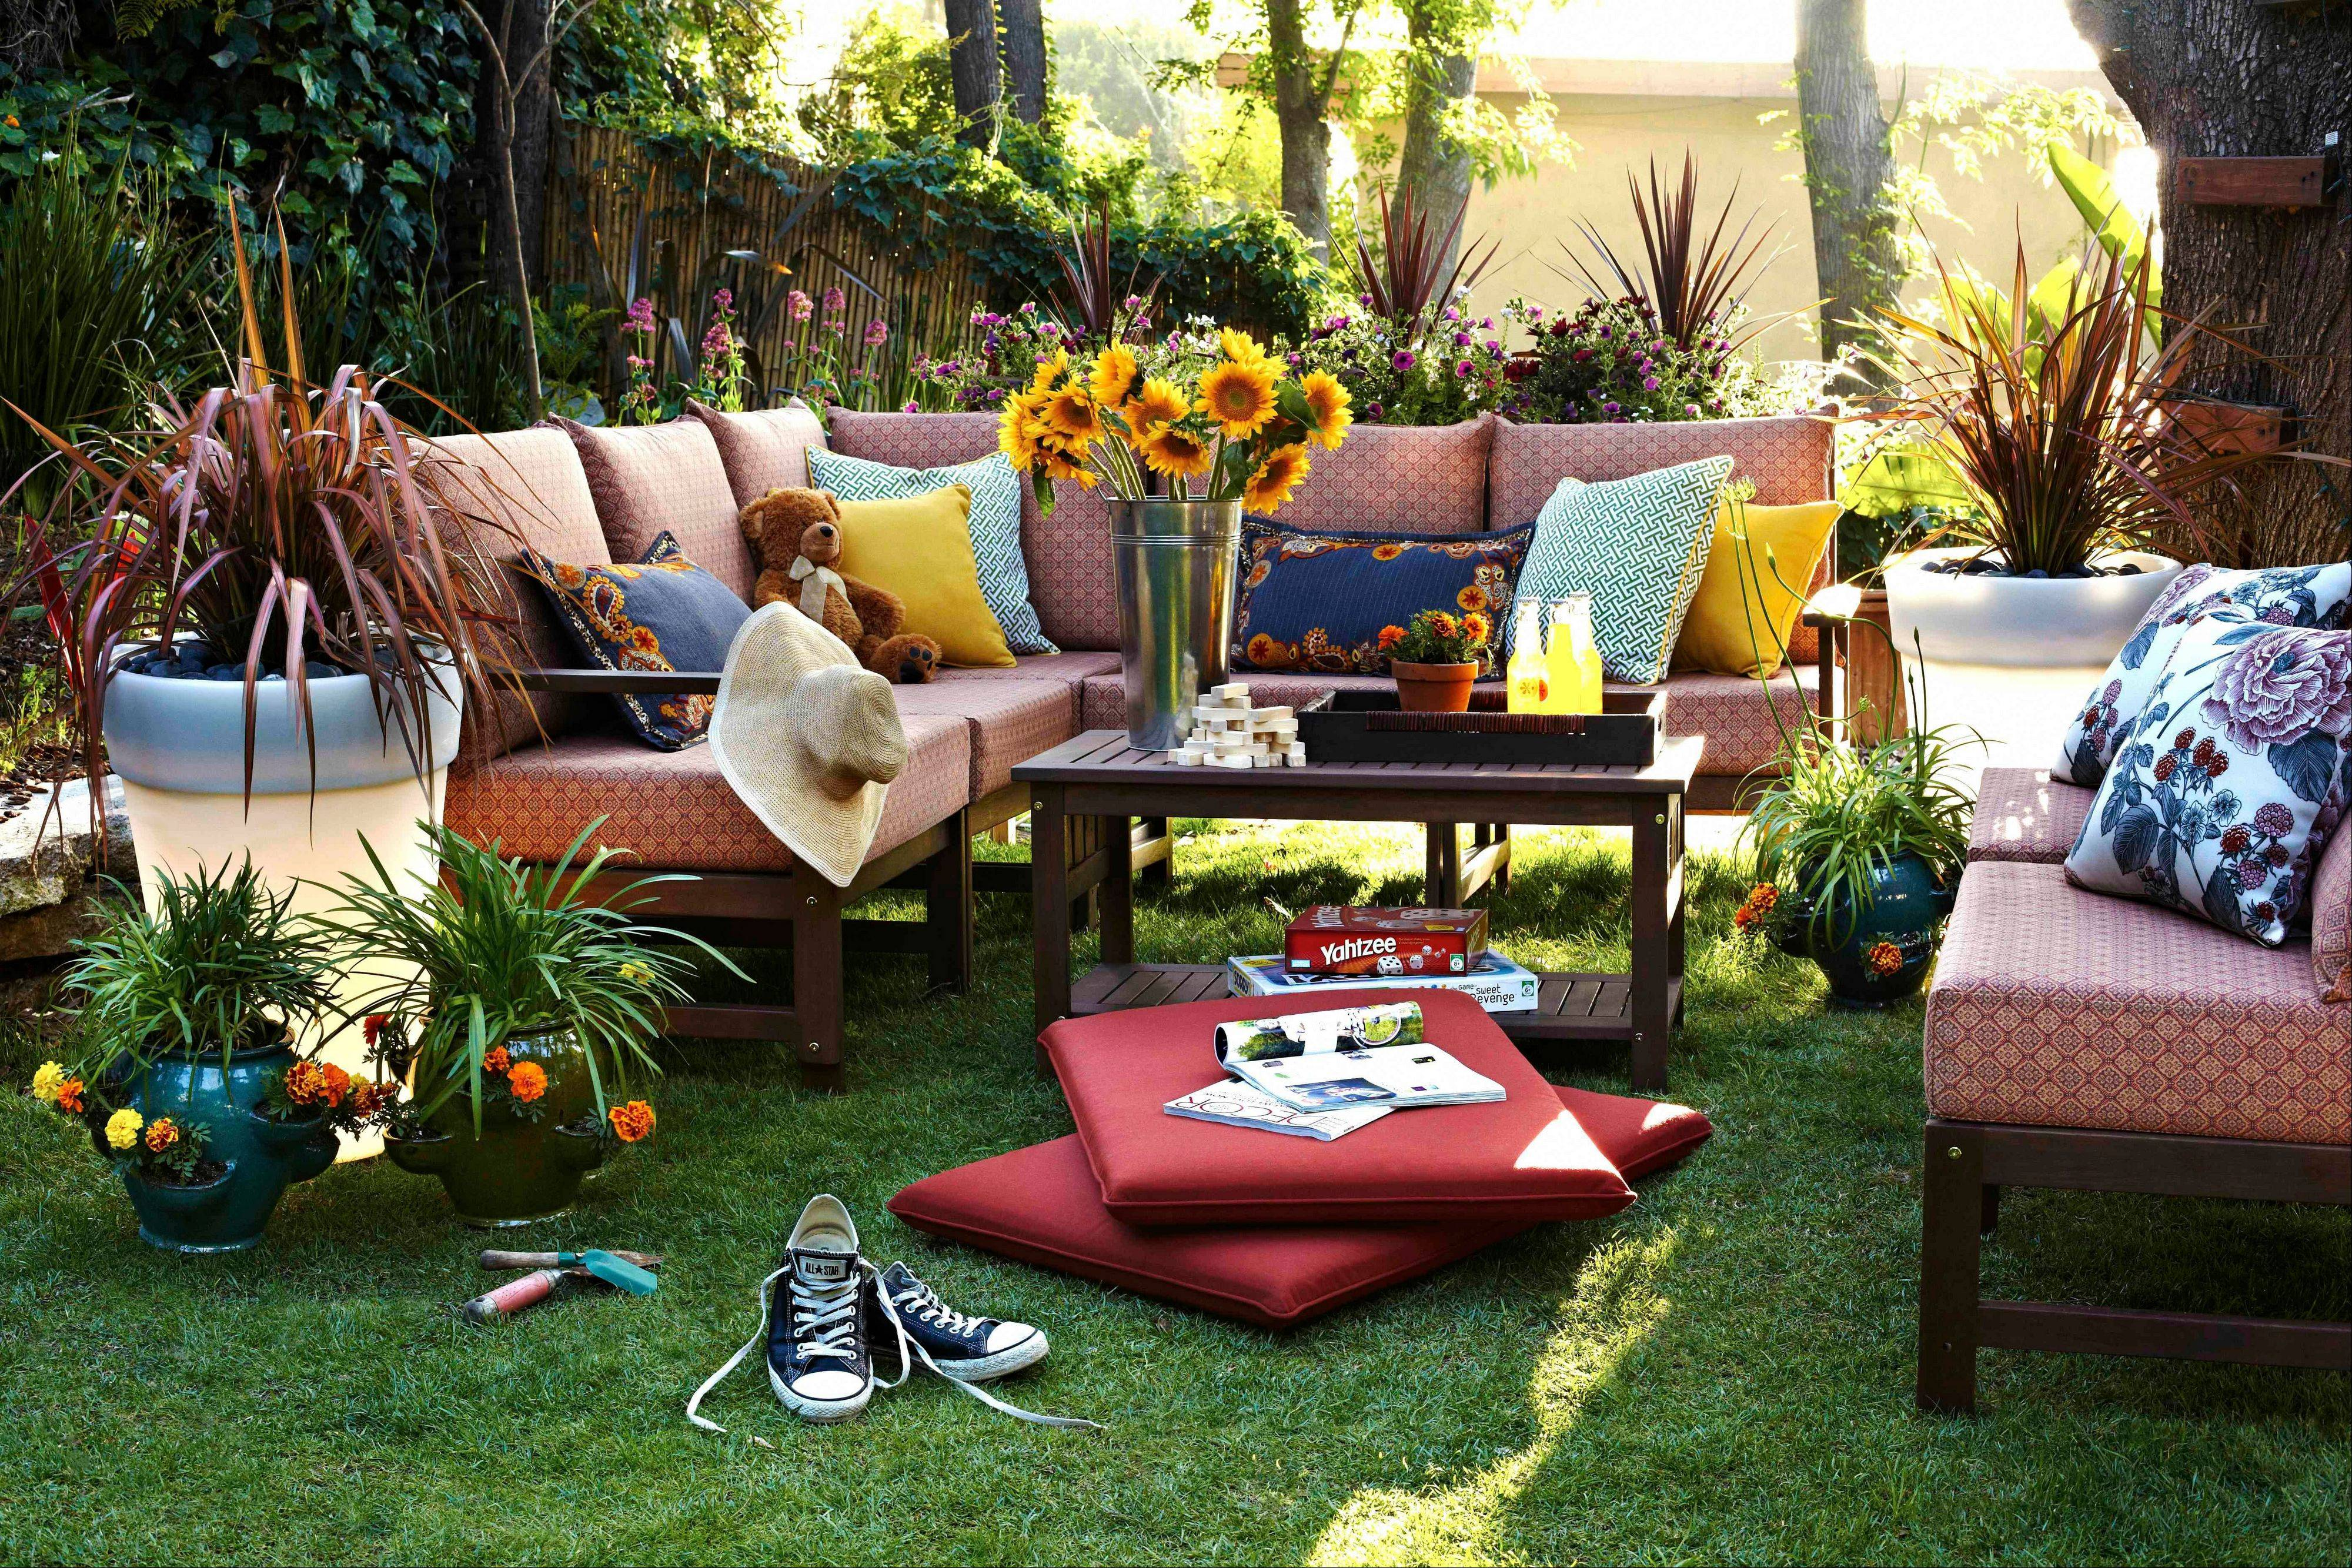 Plastic planters that are designed to light up at night were added to an outdoor family room.